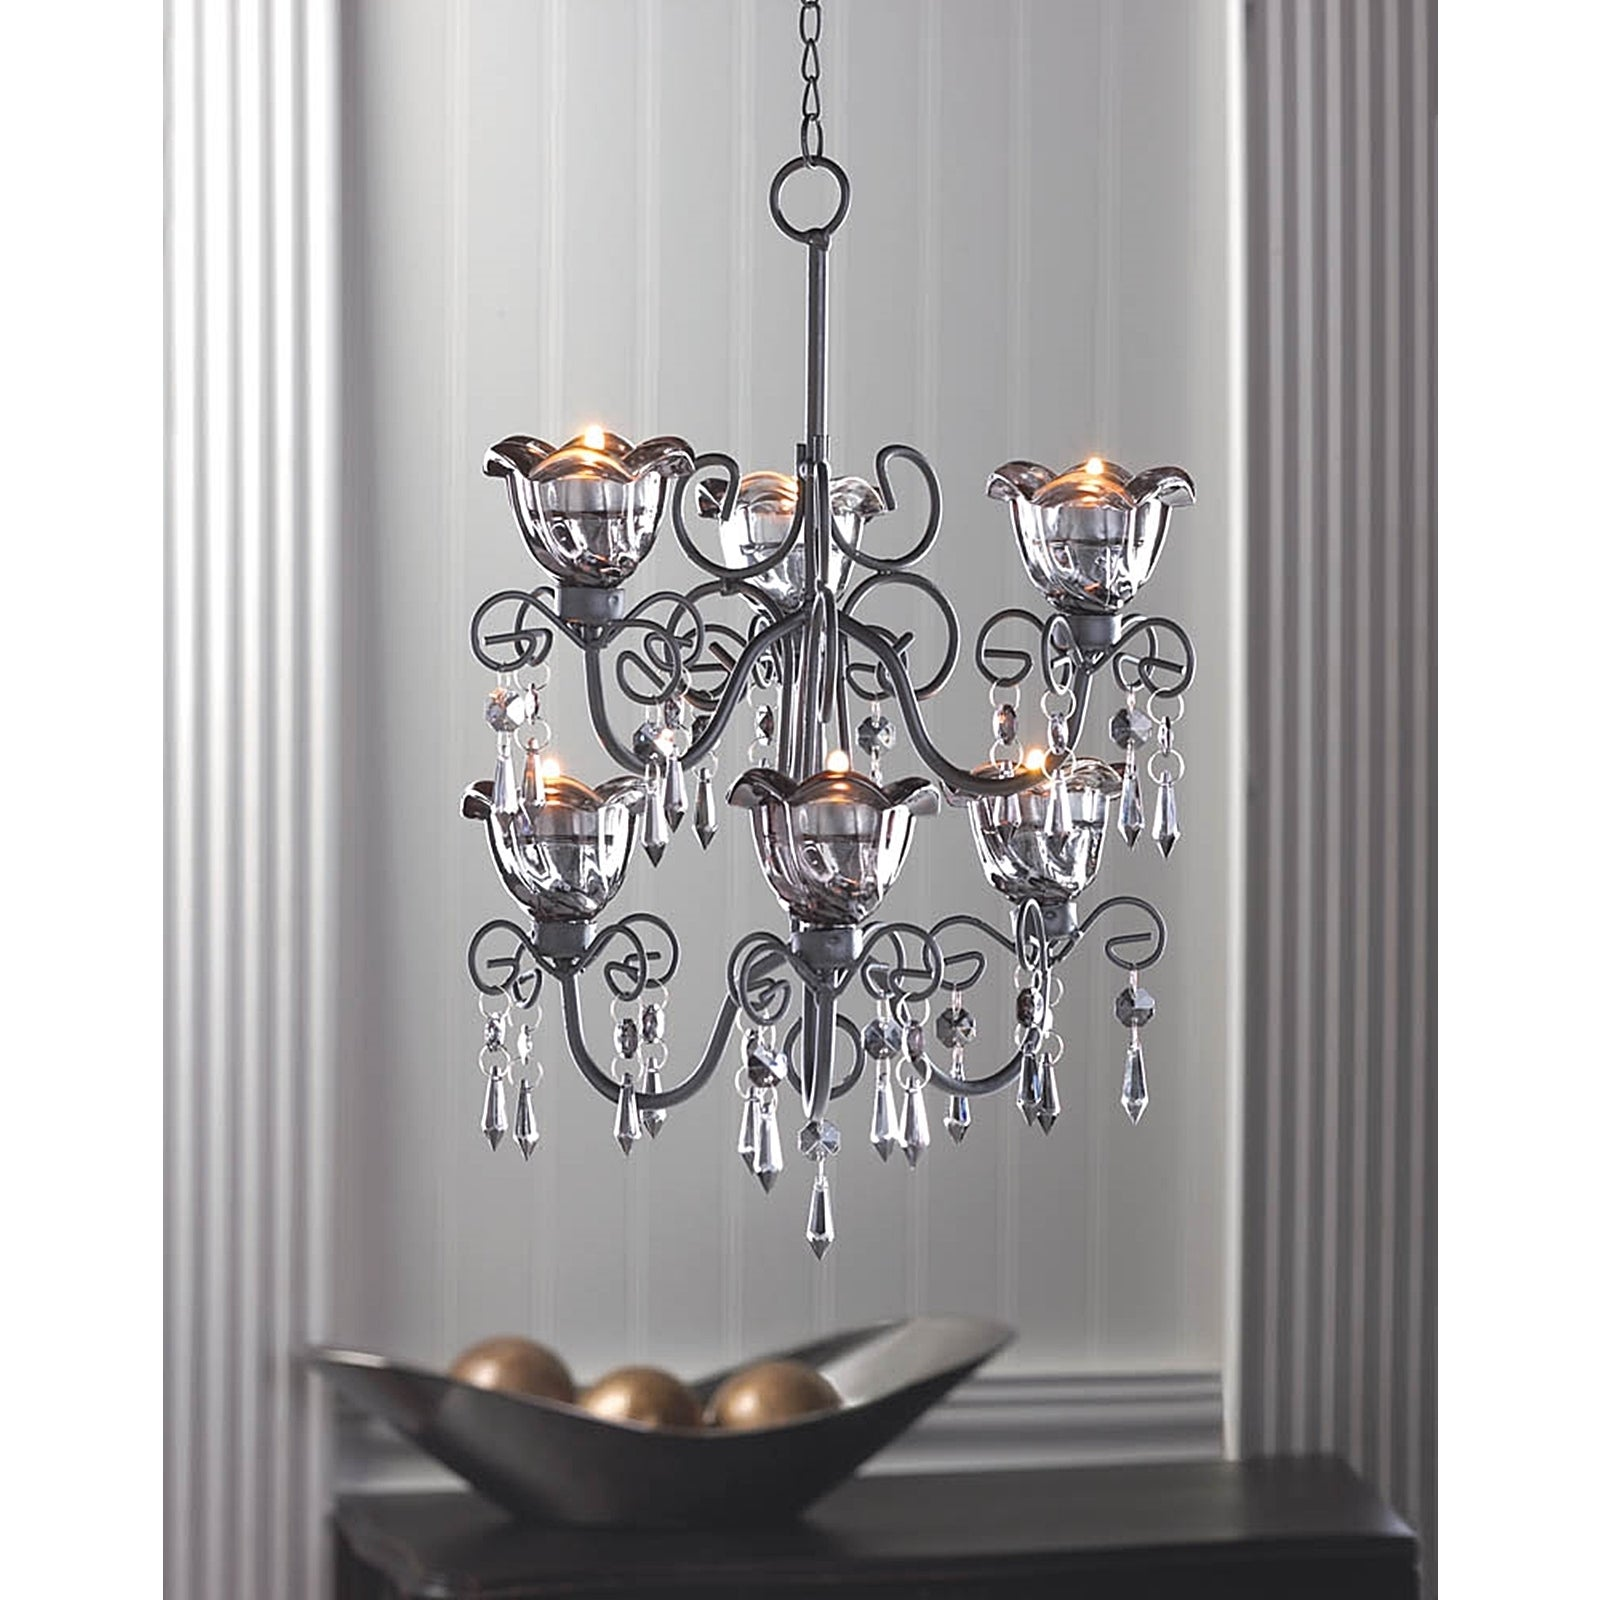 2-Tiered Black 6-Candle Hanging Chandelier (Glass)